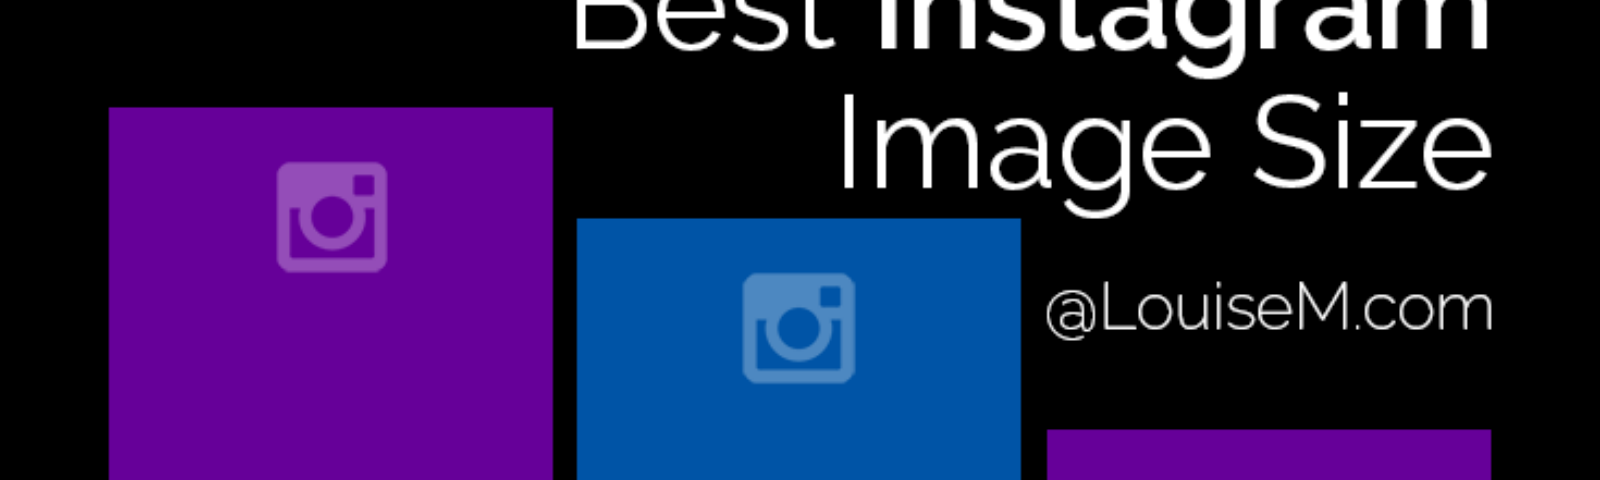 What's the Best Instagram Image Size 2019? Infographic